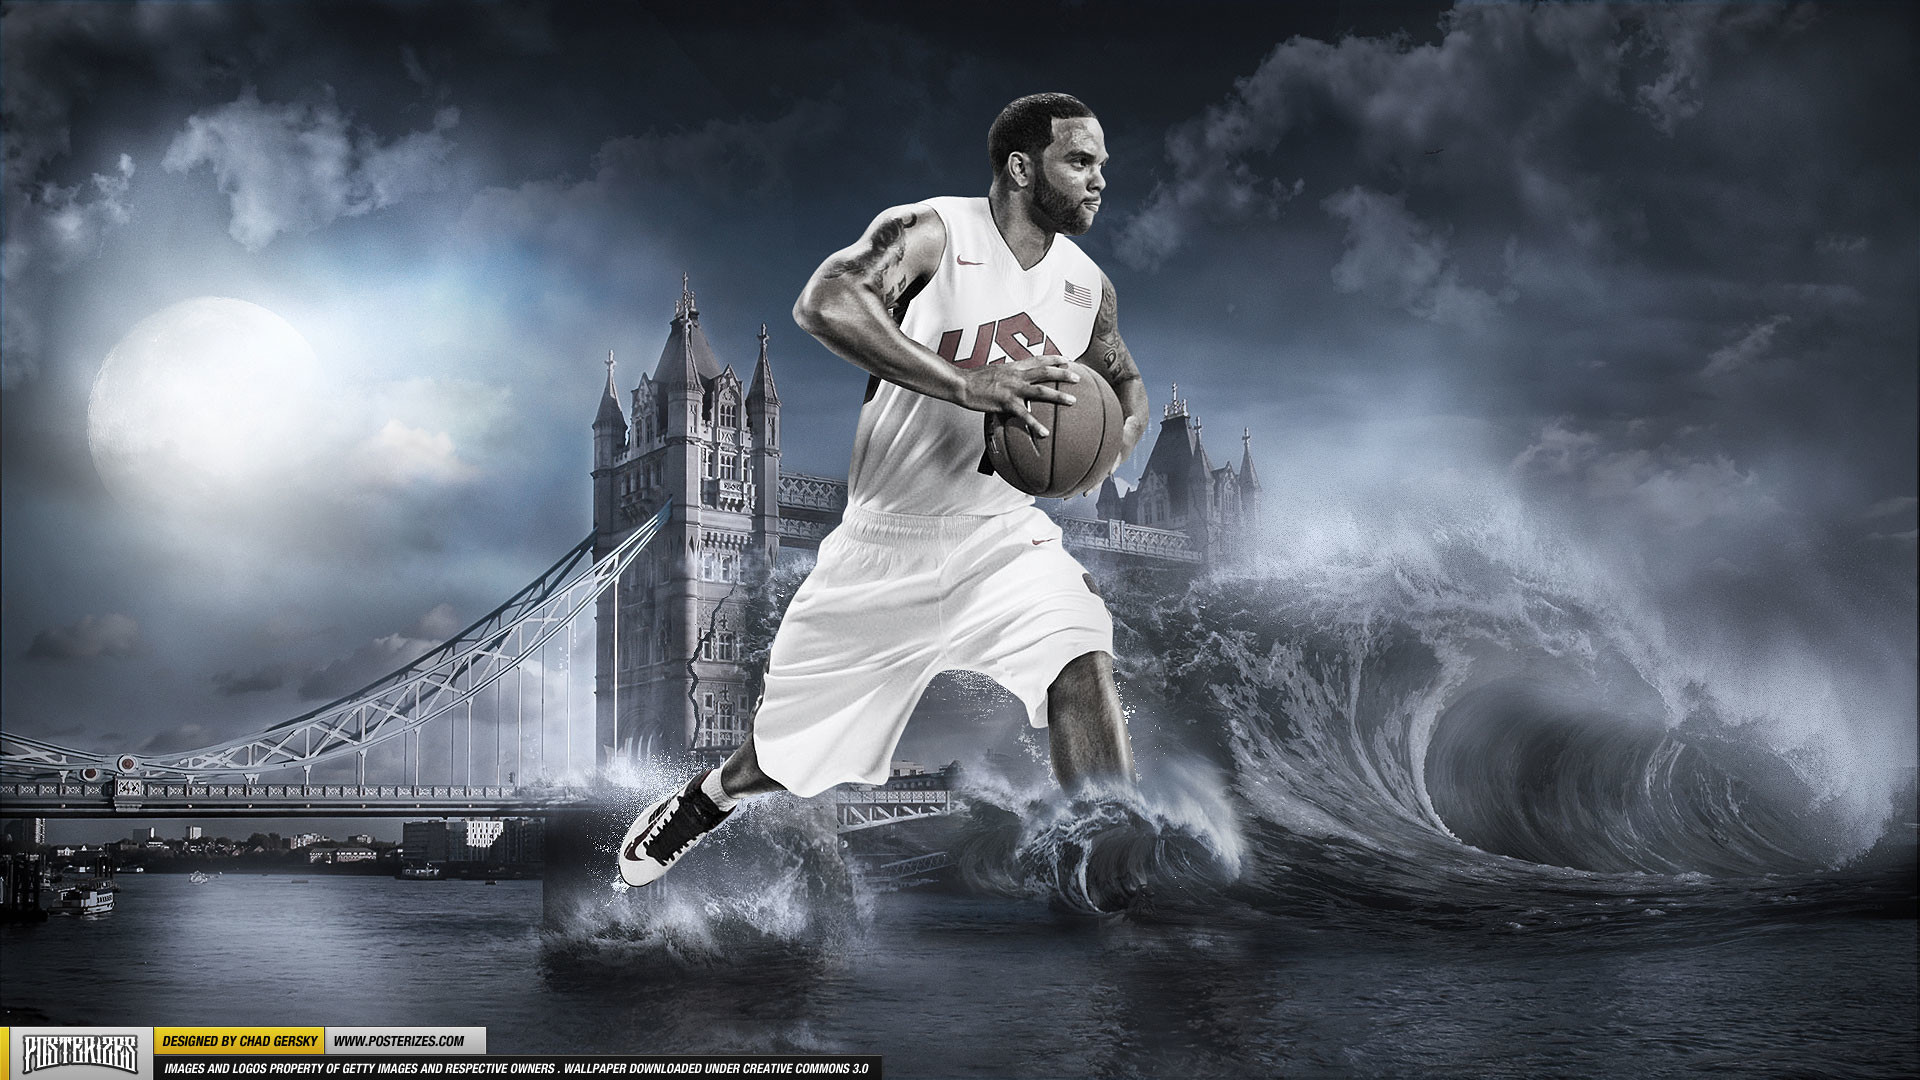 1920x1080 2250x1500 UK basketball .